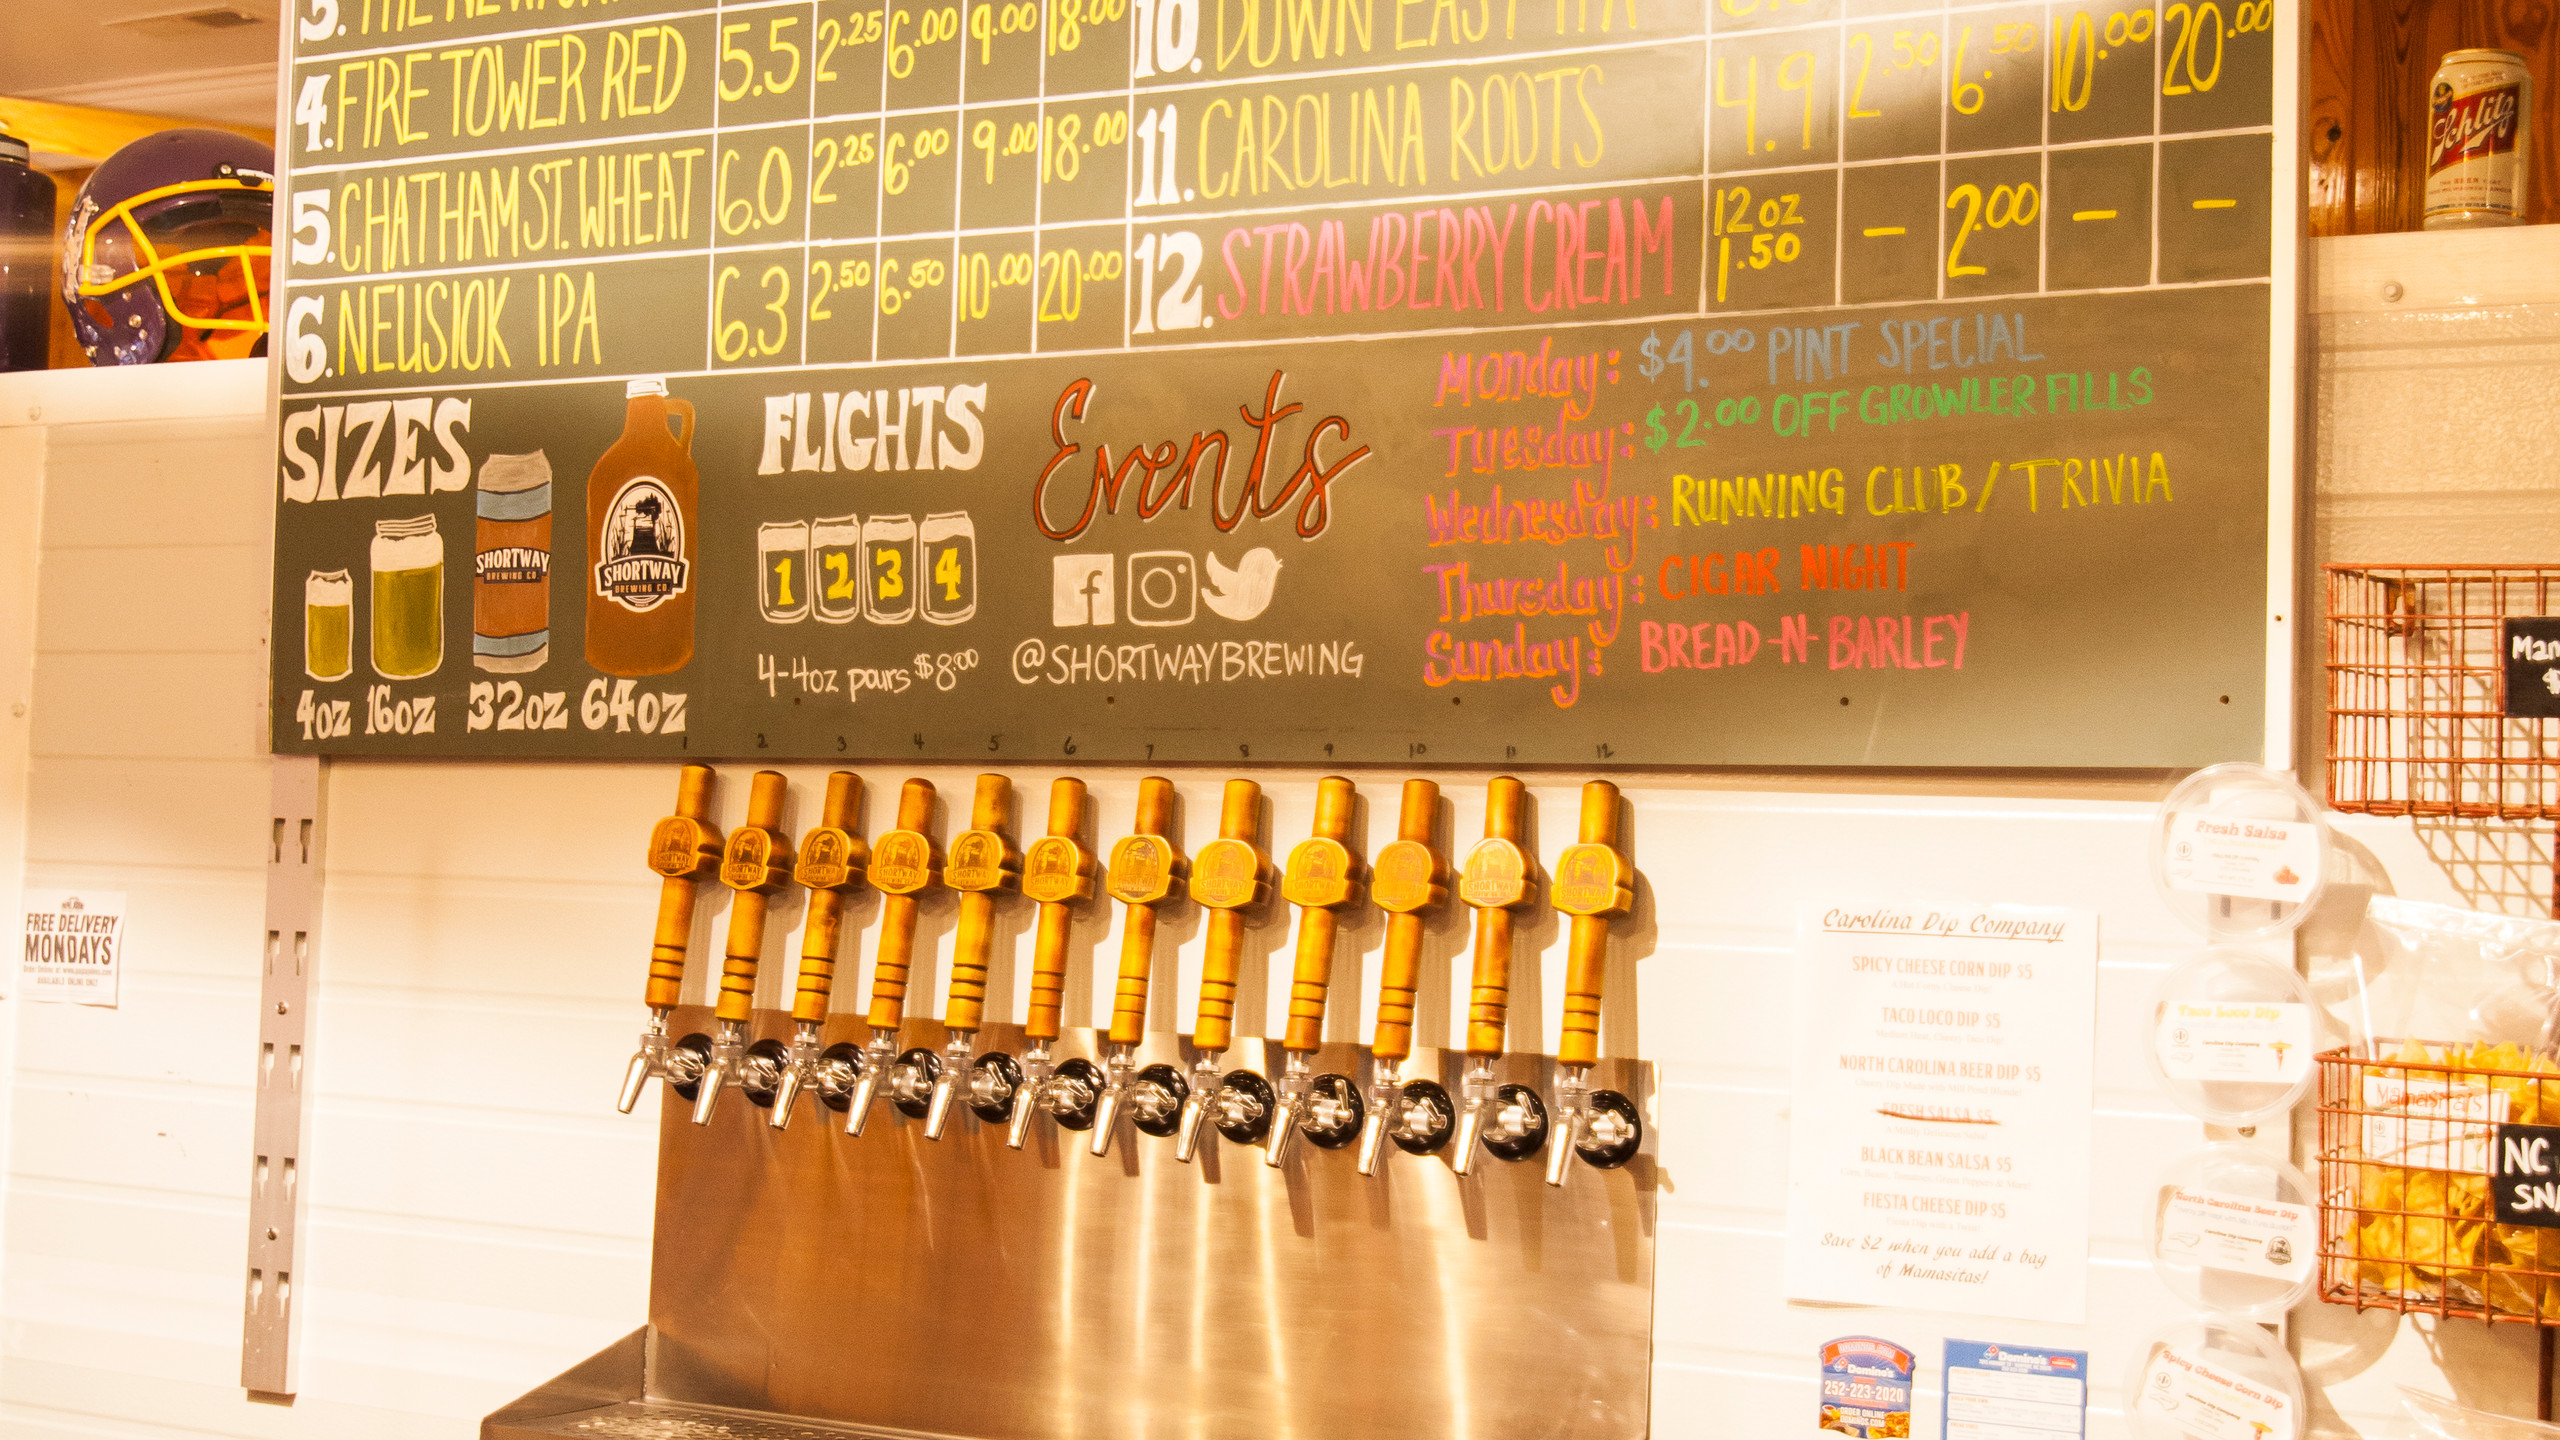 Chalkboards and Tap Handles